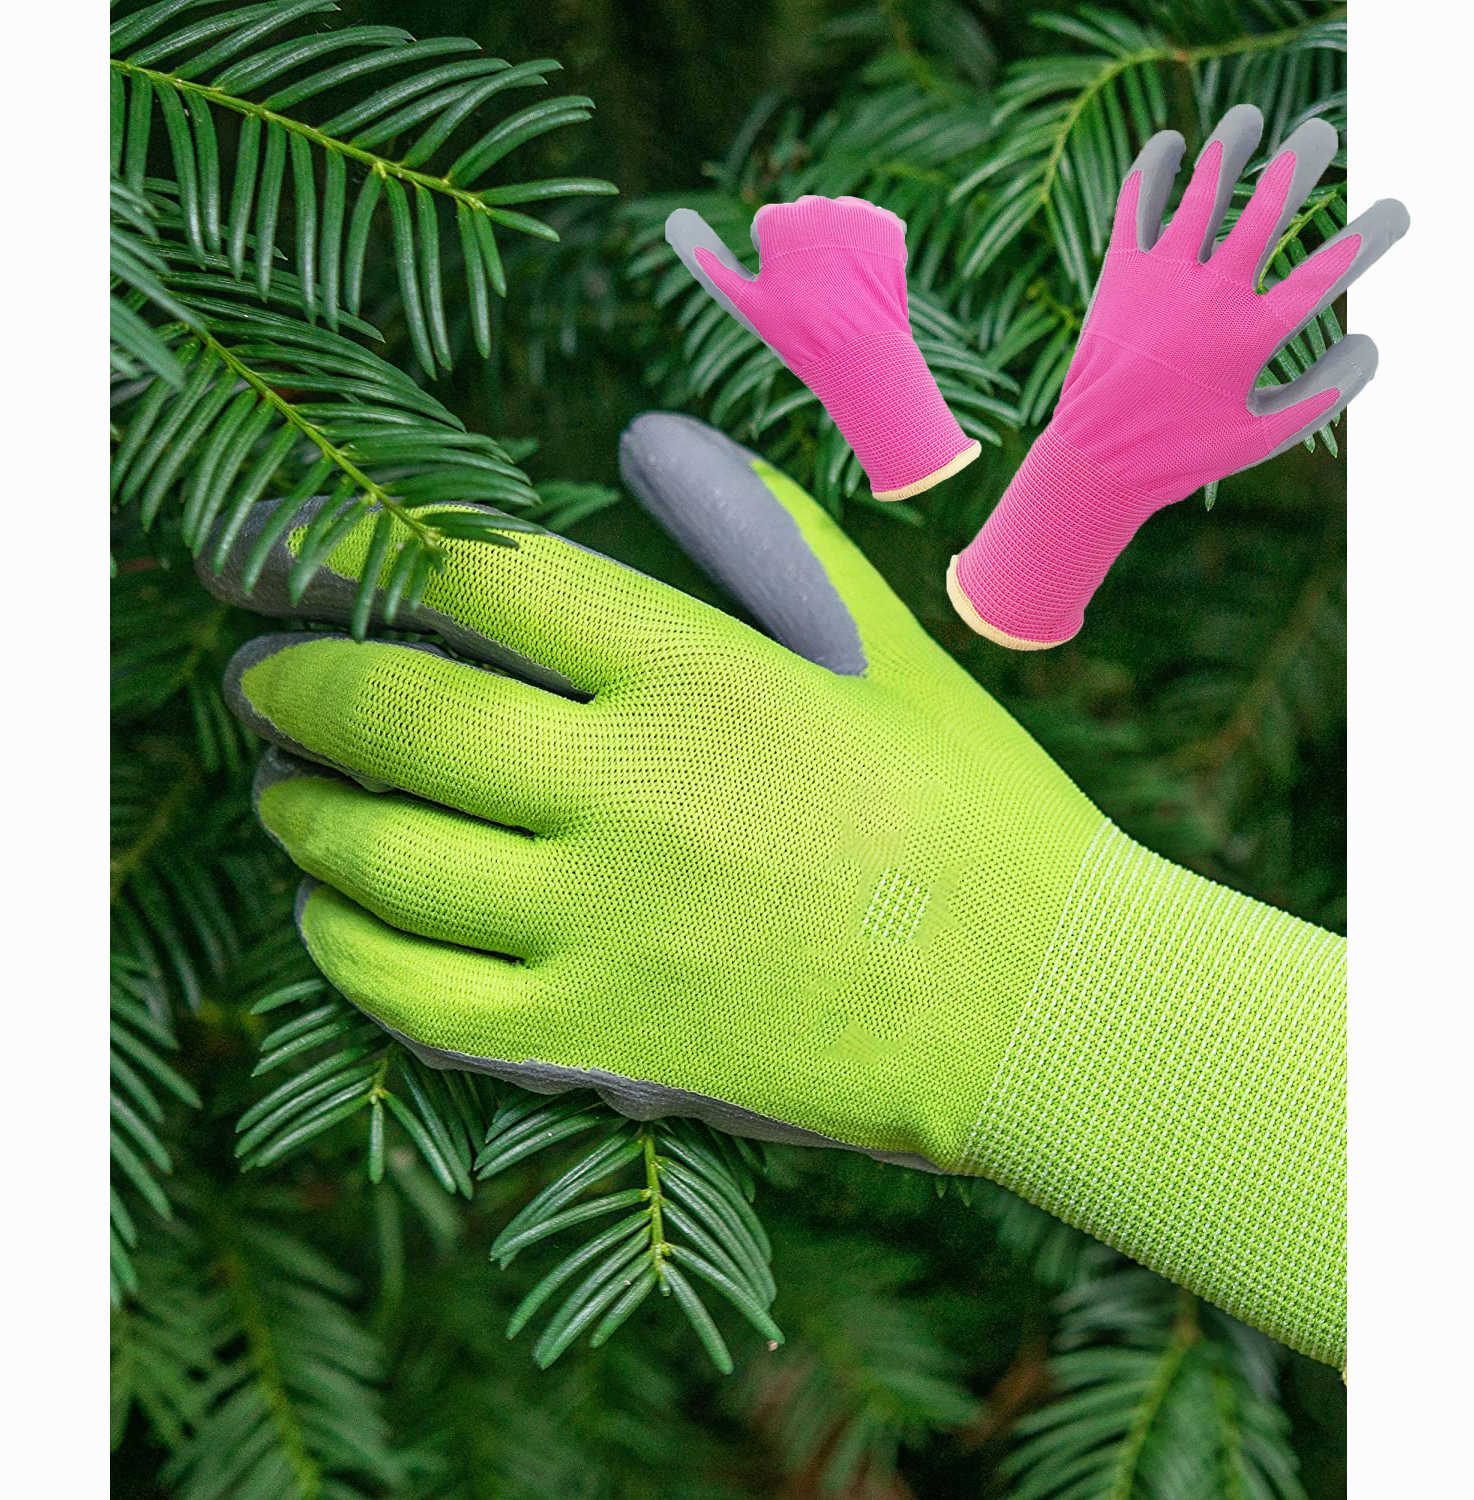 custom logo rubber latex dipped gloves safety latex nitrile blue nitrile gloves work safe ladies for fishing planting repairing